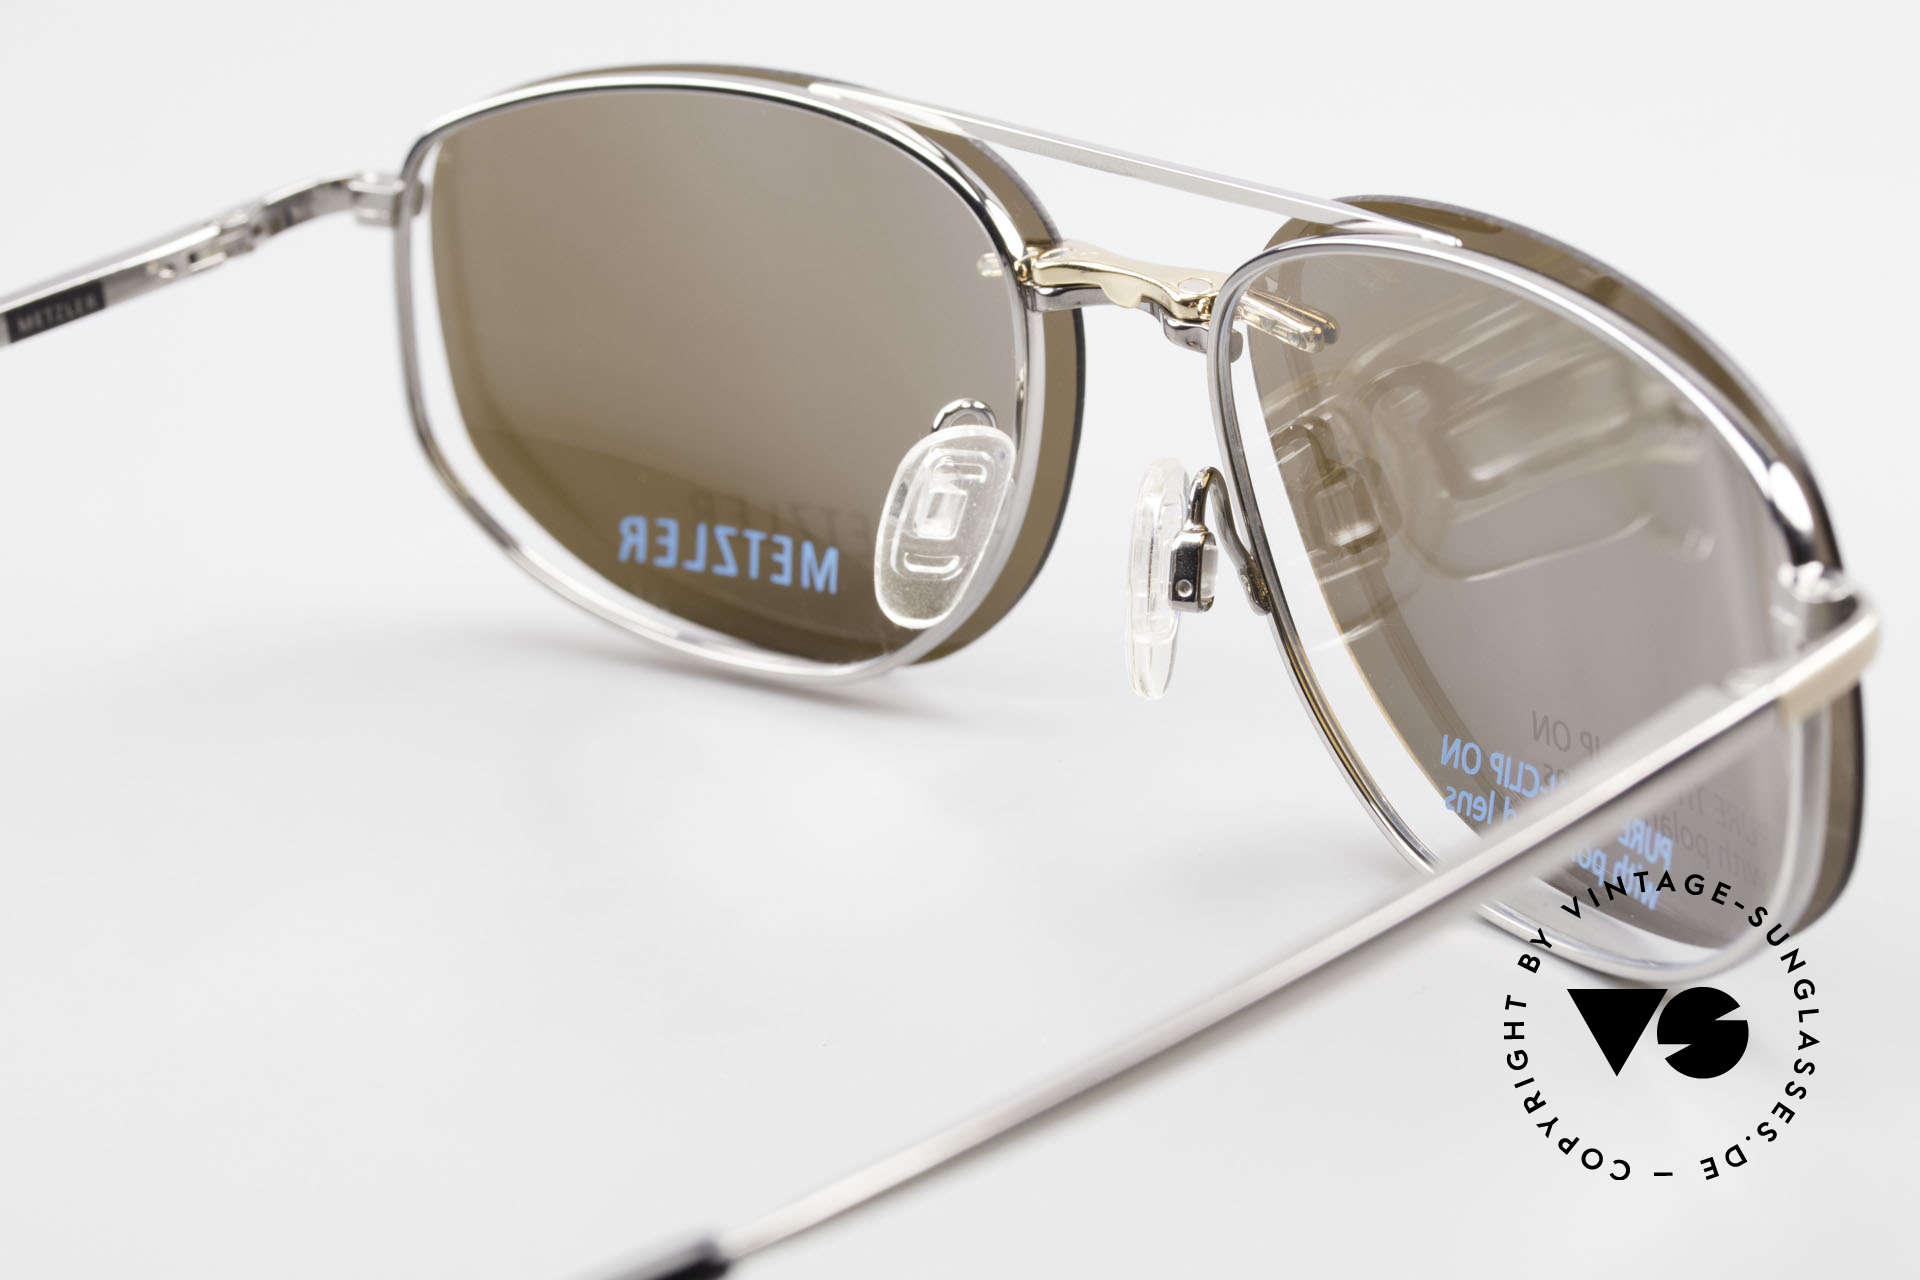 Metzler 1715 Titanium Specs Polarized Clip, the frame can be glazed with optical lenses of any kind, Made for Men